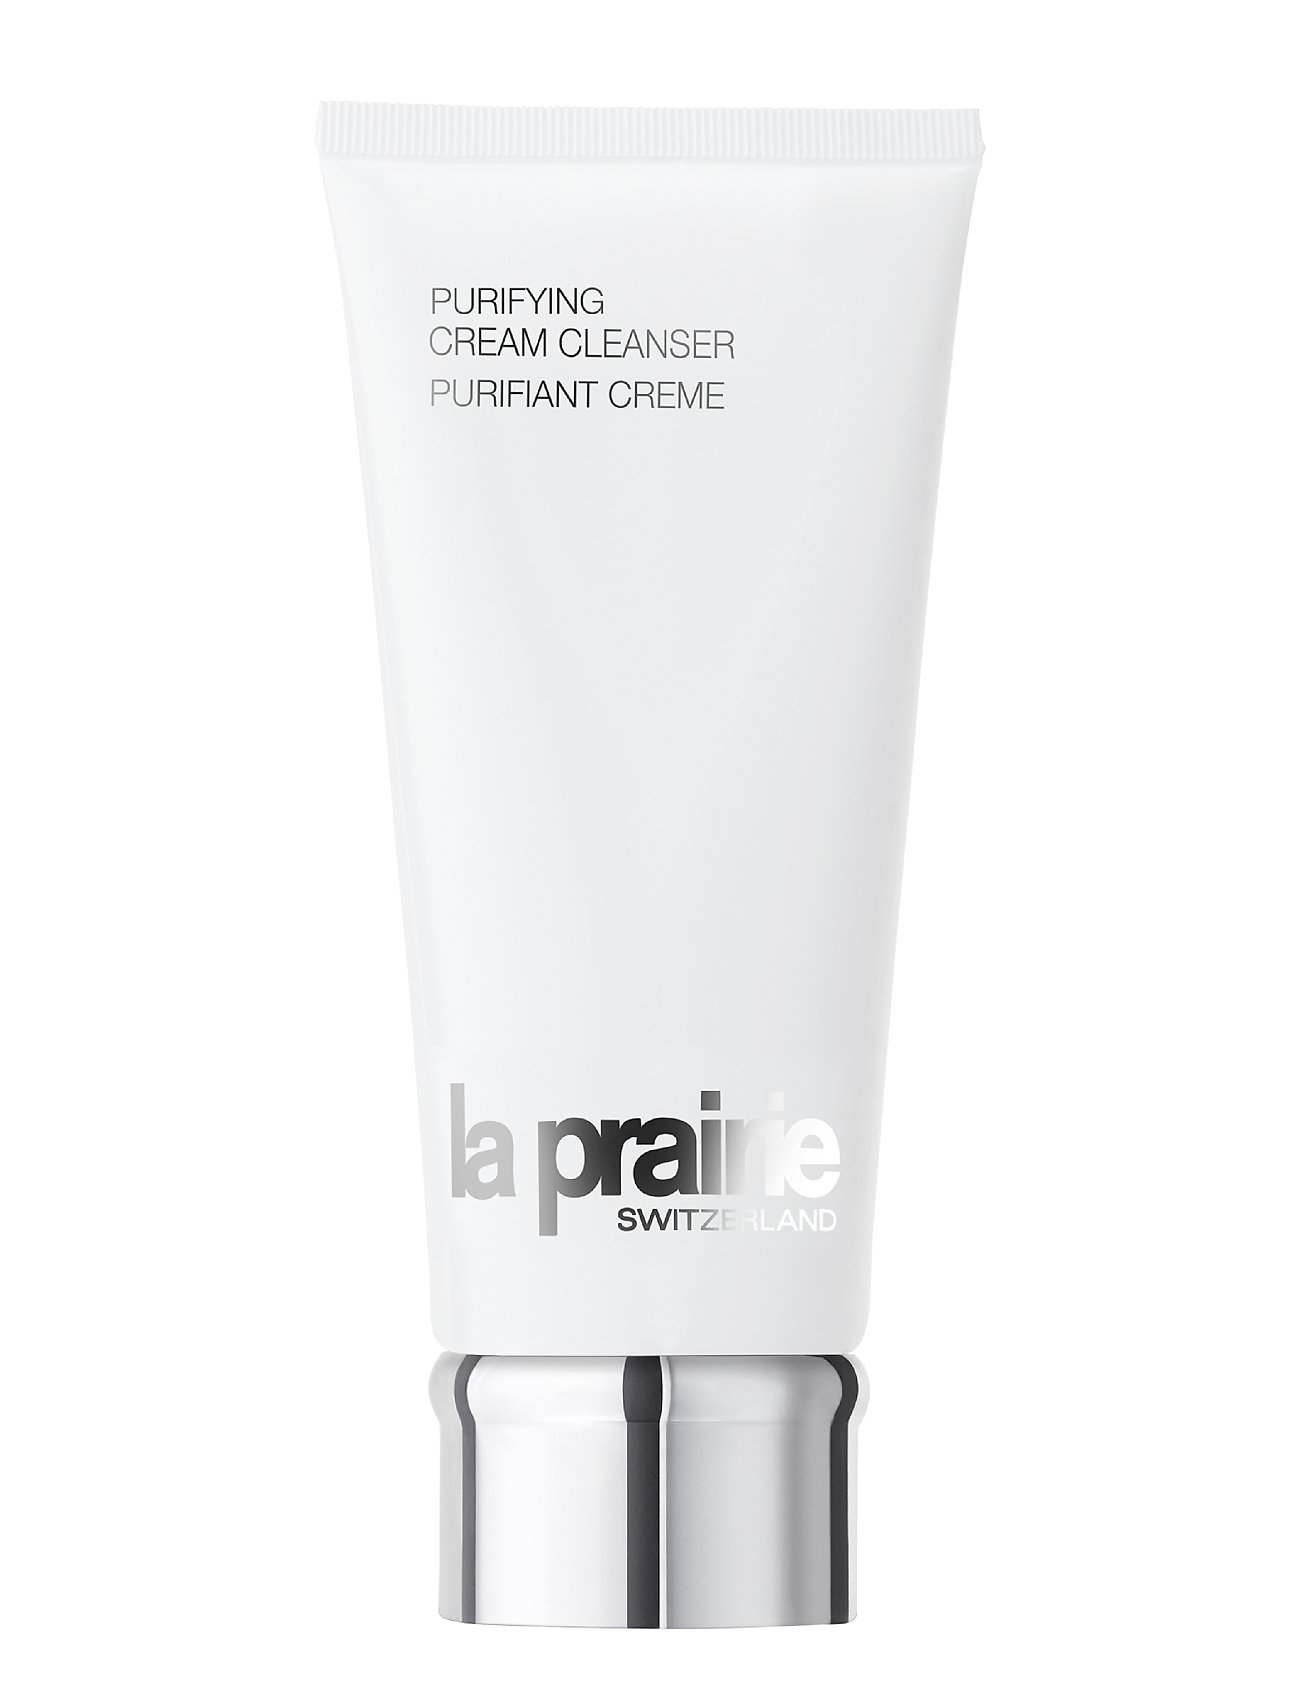 La Prairie CLEANSERS AND TONERS PURIFYING CREAM CLEANSER - NO COLOR